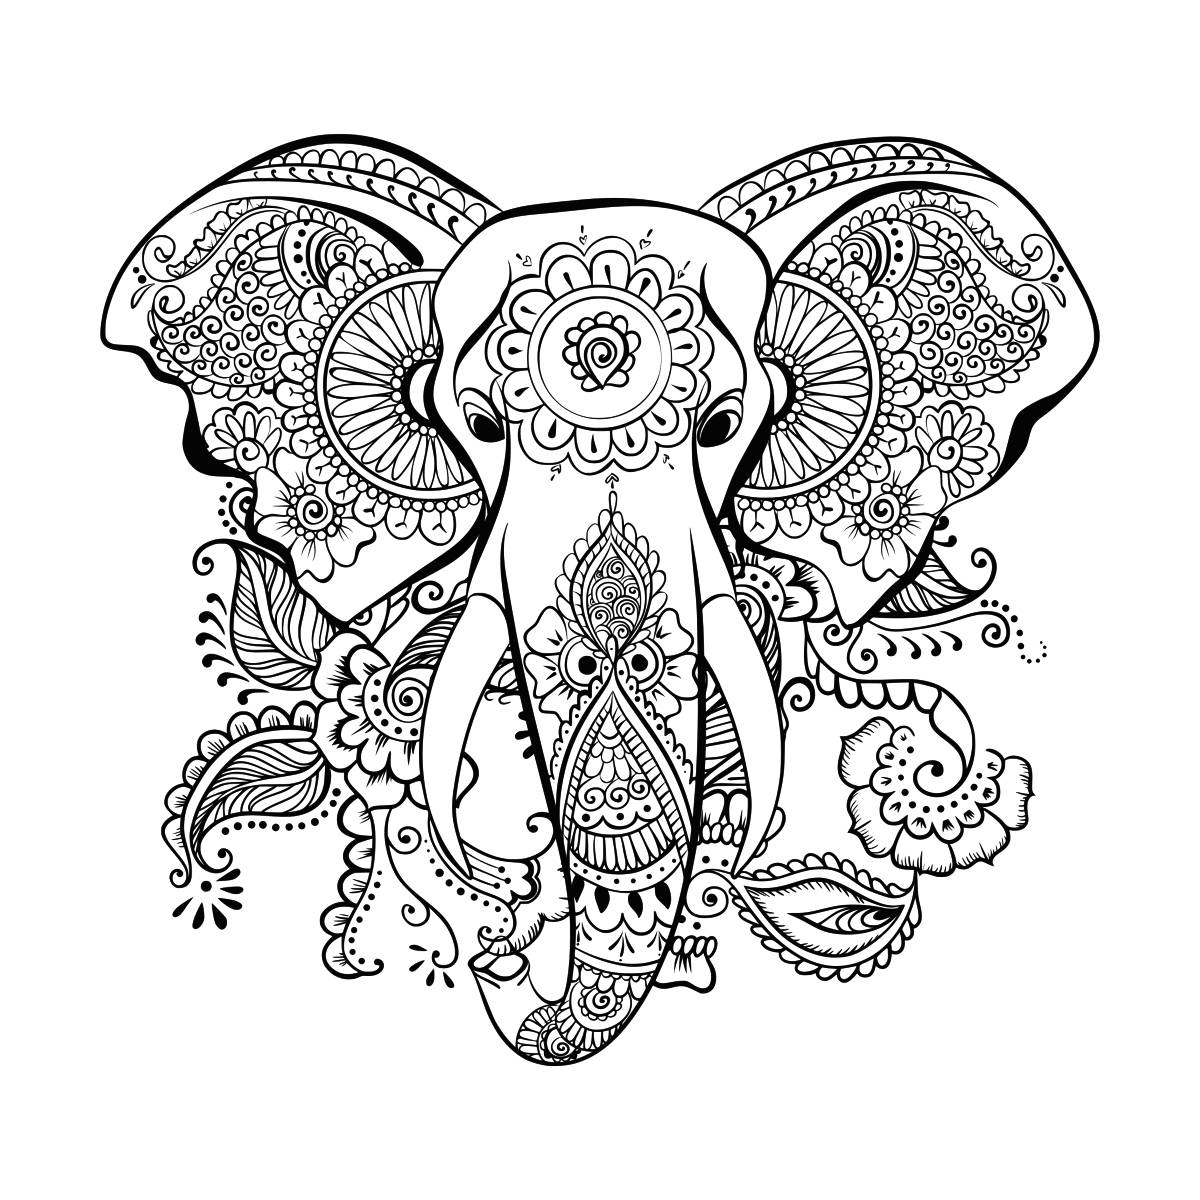 Zentangle Elefant Vorlage Ethnischen Elefant Svg Mandala Elefant Svg Elefant Kopf Svg Zentangle Elefant Svg Schnitt Tisch Design Svg Dxf Eps Png